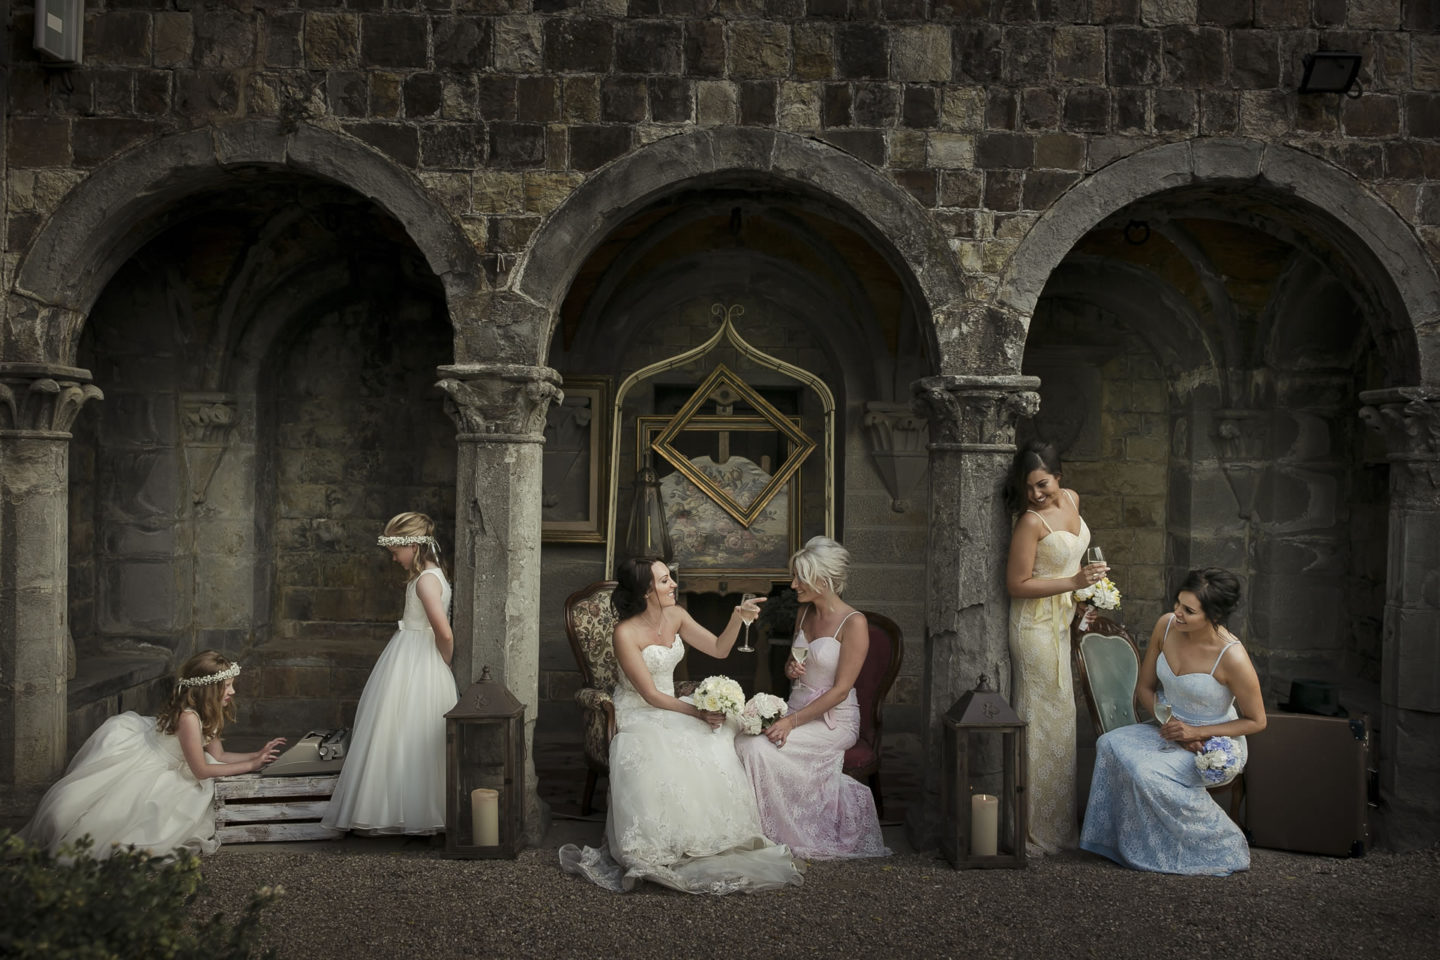 Under The Arch :: Groups Bridal Parties :: David Bastianoni wedding photographer